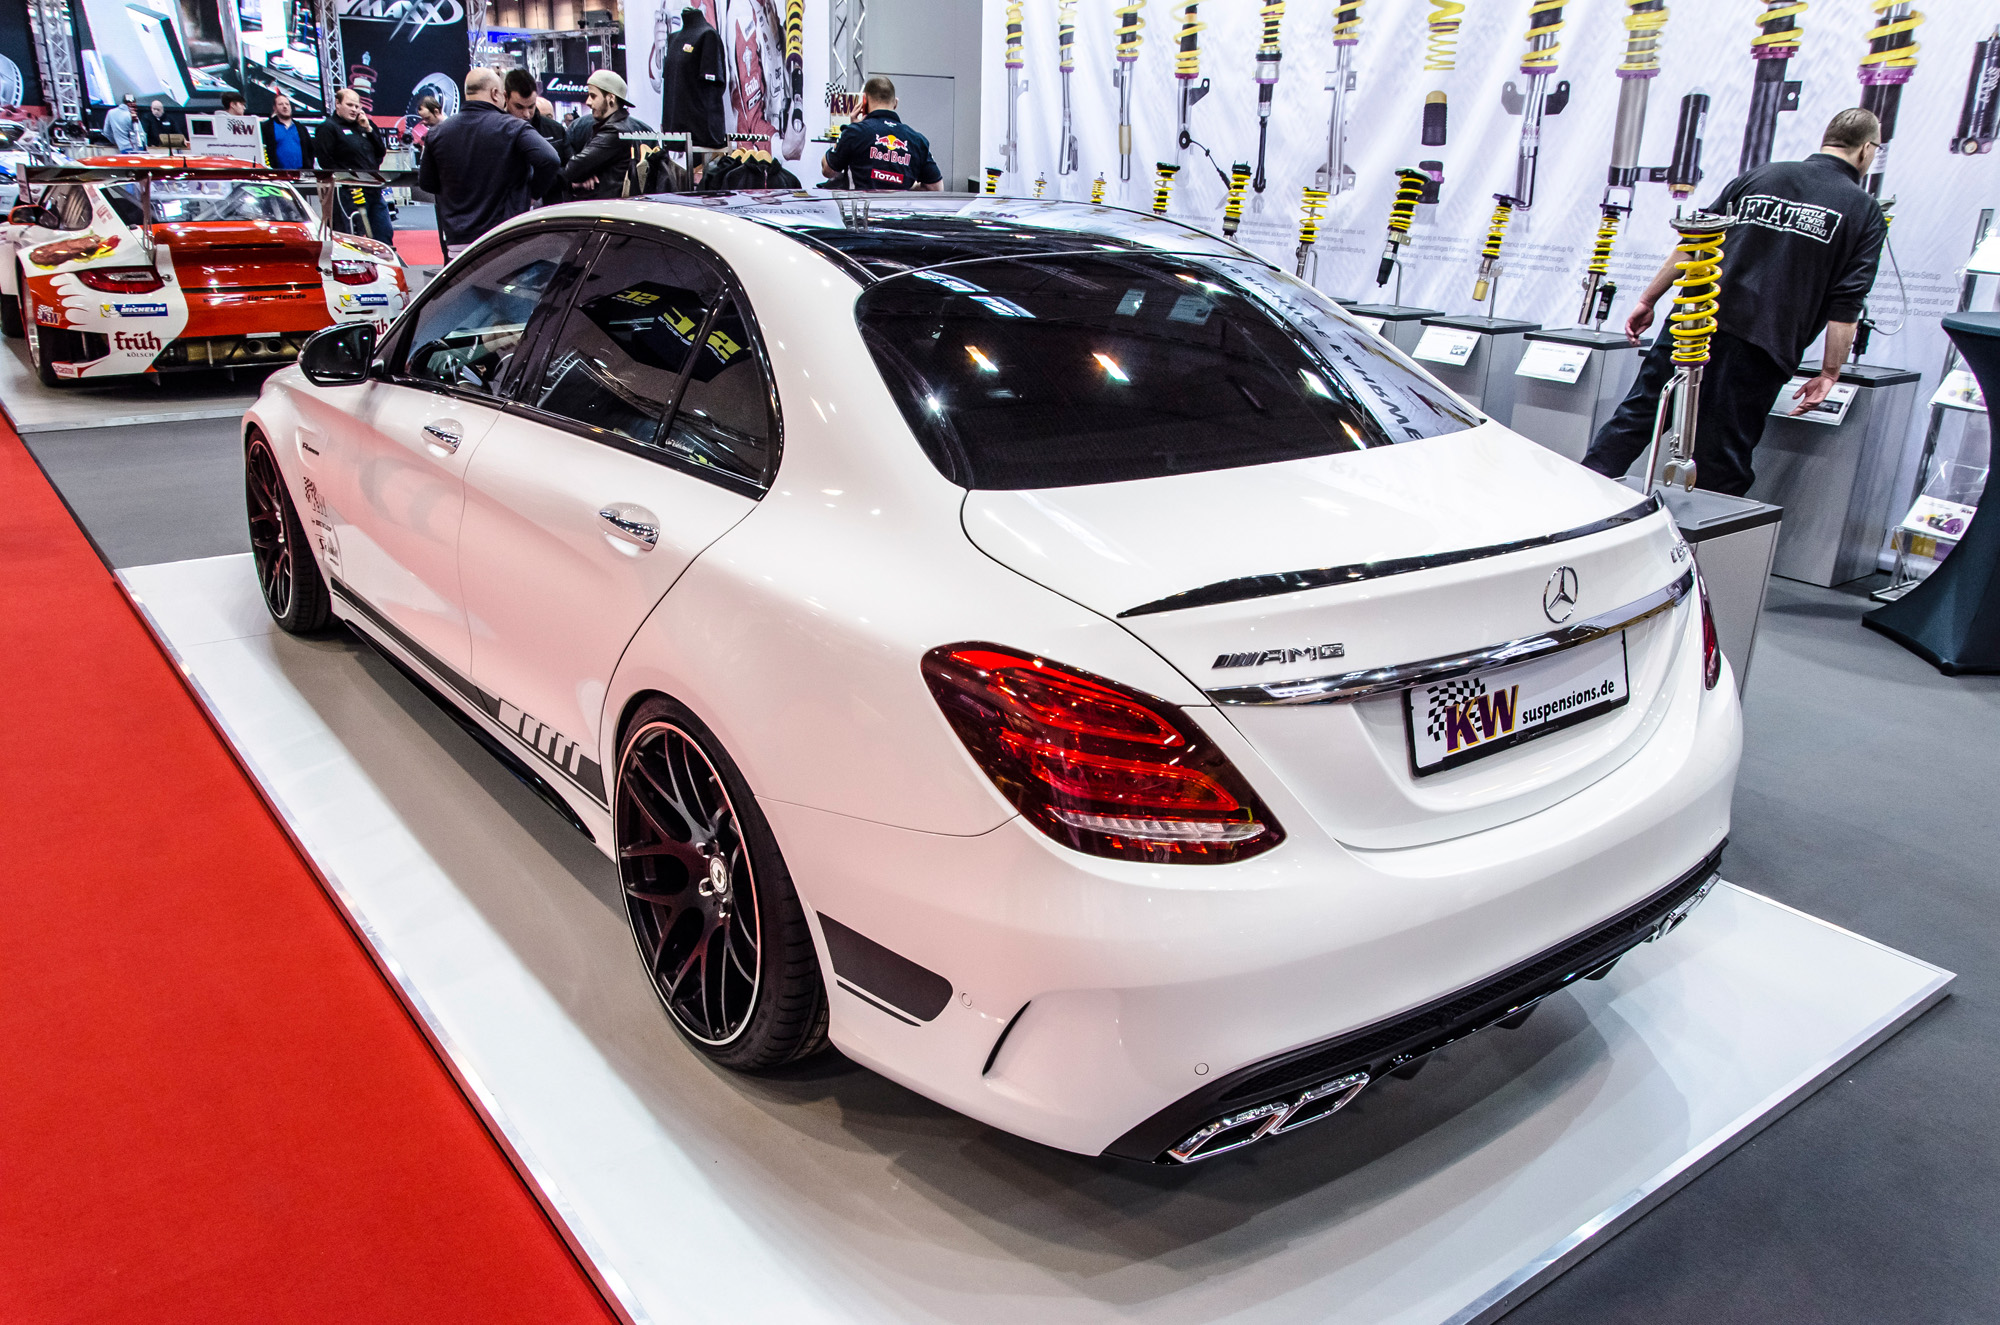 essen-motor-show-2015-preview-day-49